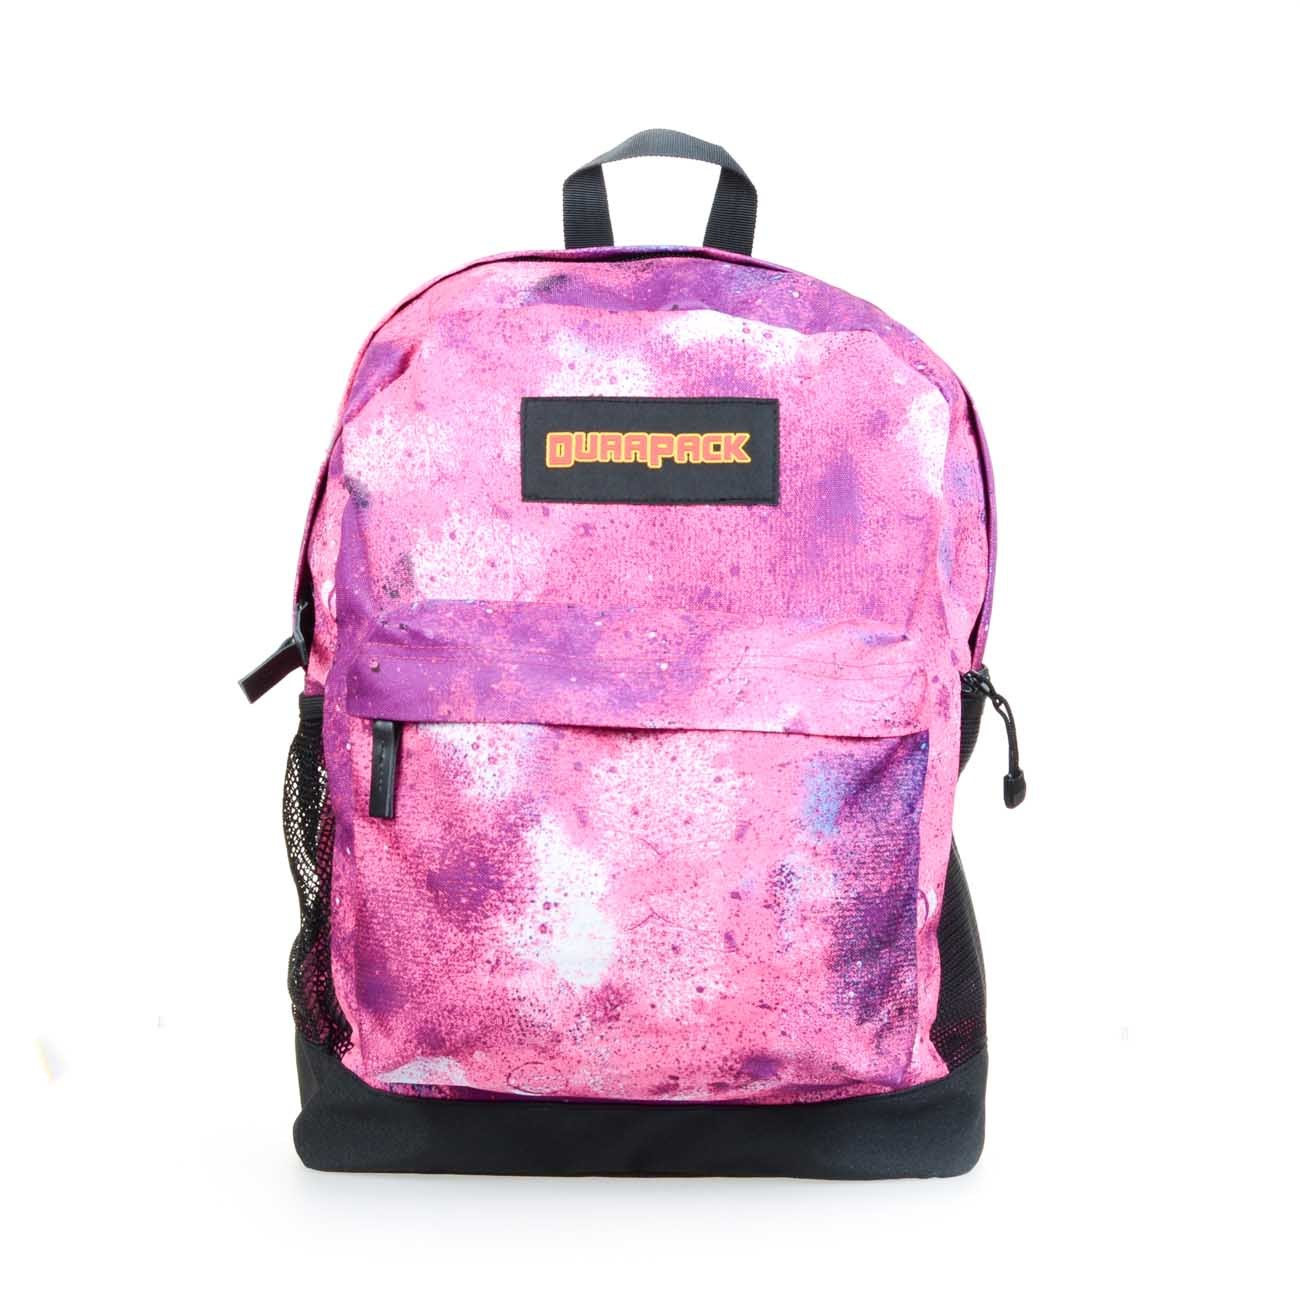 DURAPACK CAMPUS HERO BACKPACK (UNIBLAST ROSEATE)